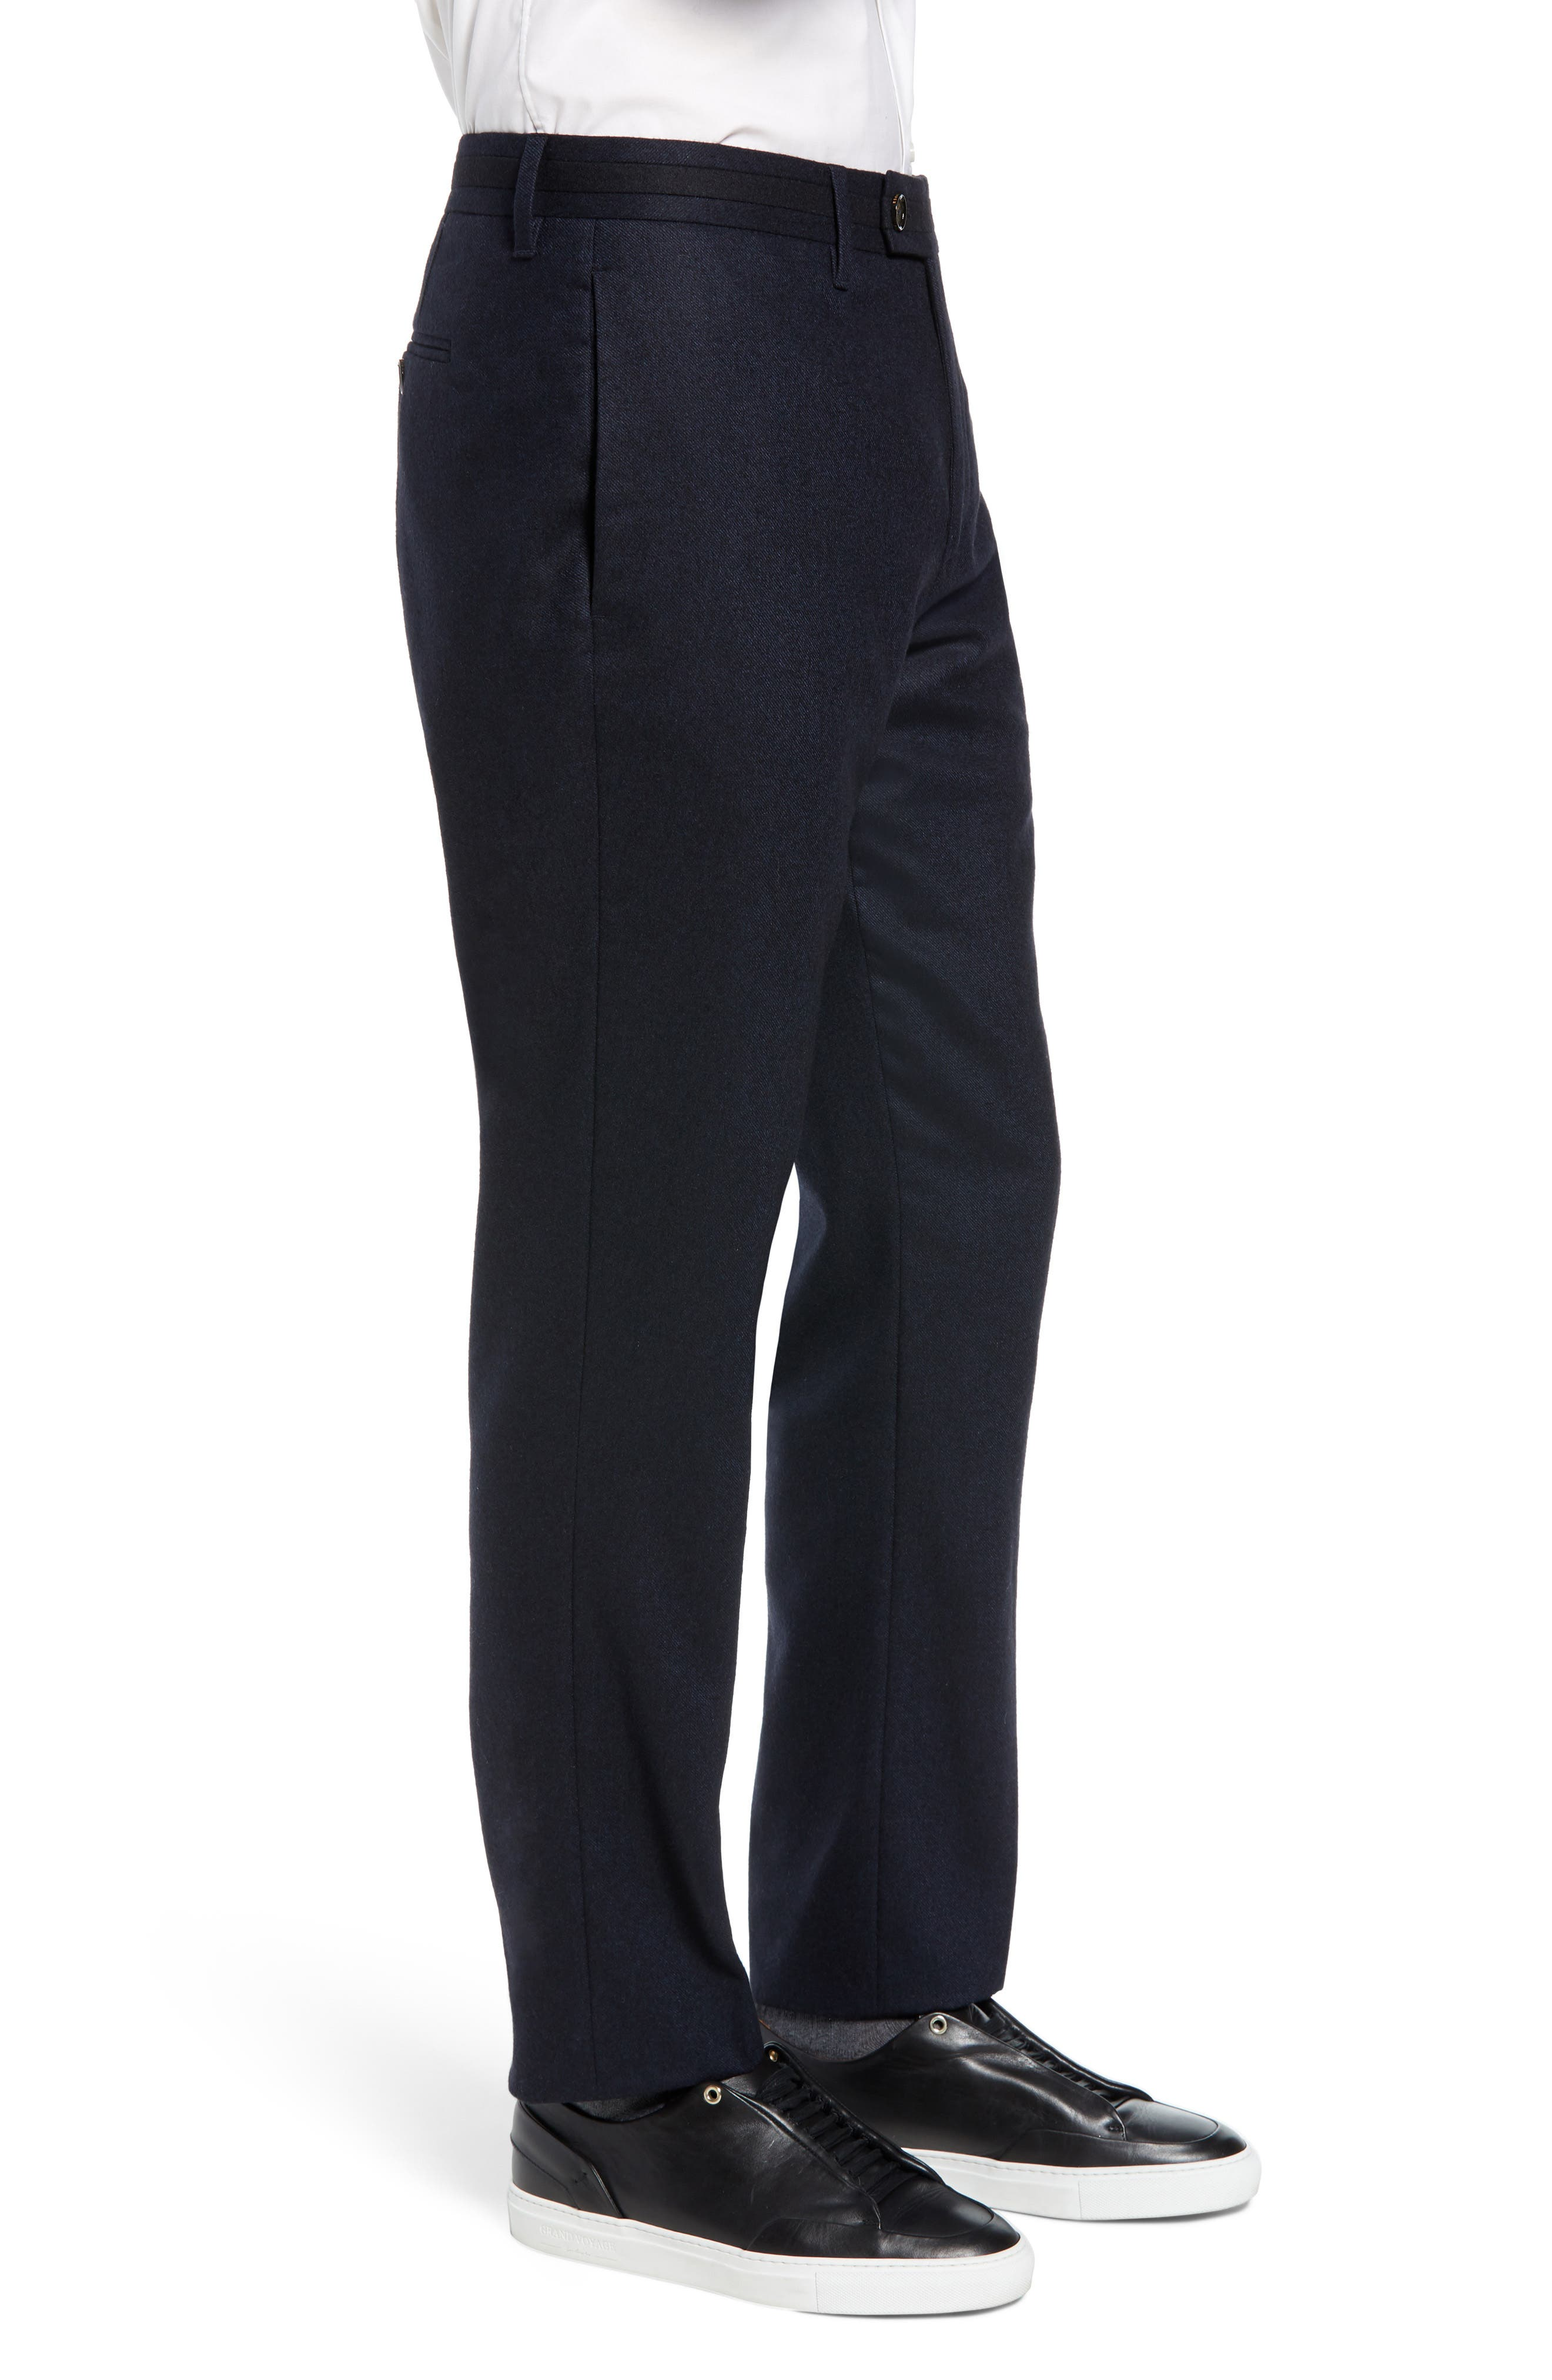 Matztro Trim Fit Wool Blend Trousers,                             Alternate thumbnail 3, color,                             NAVY